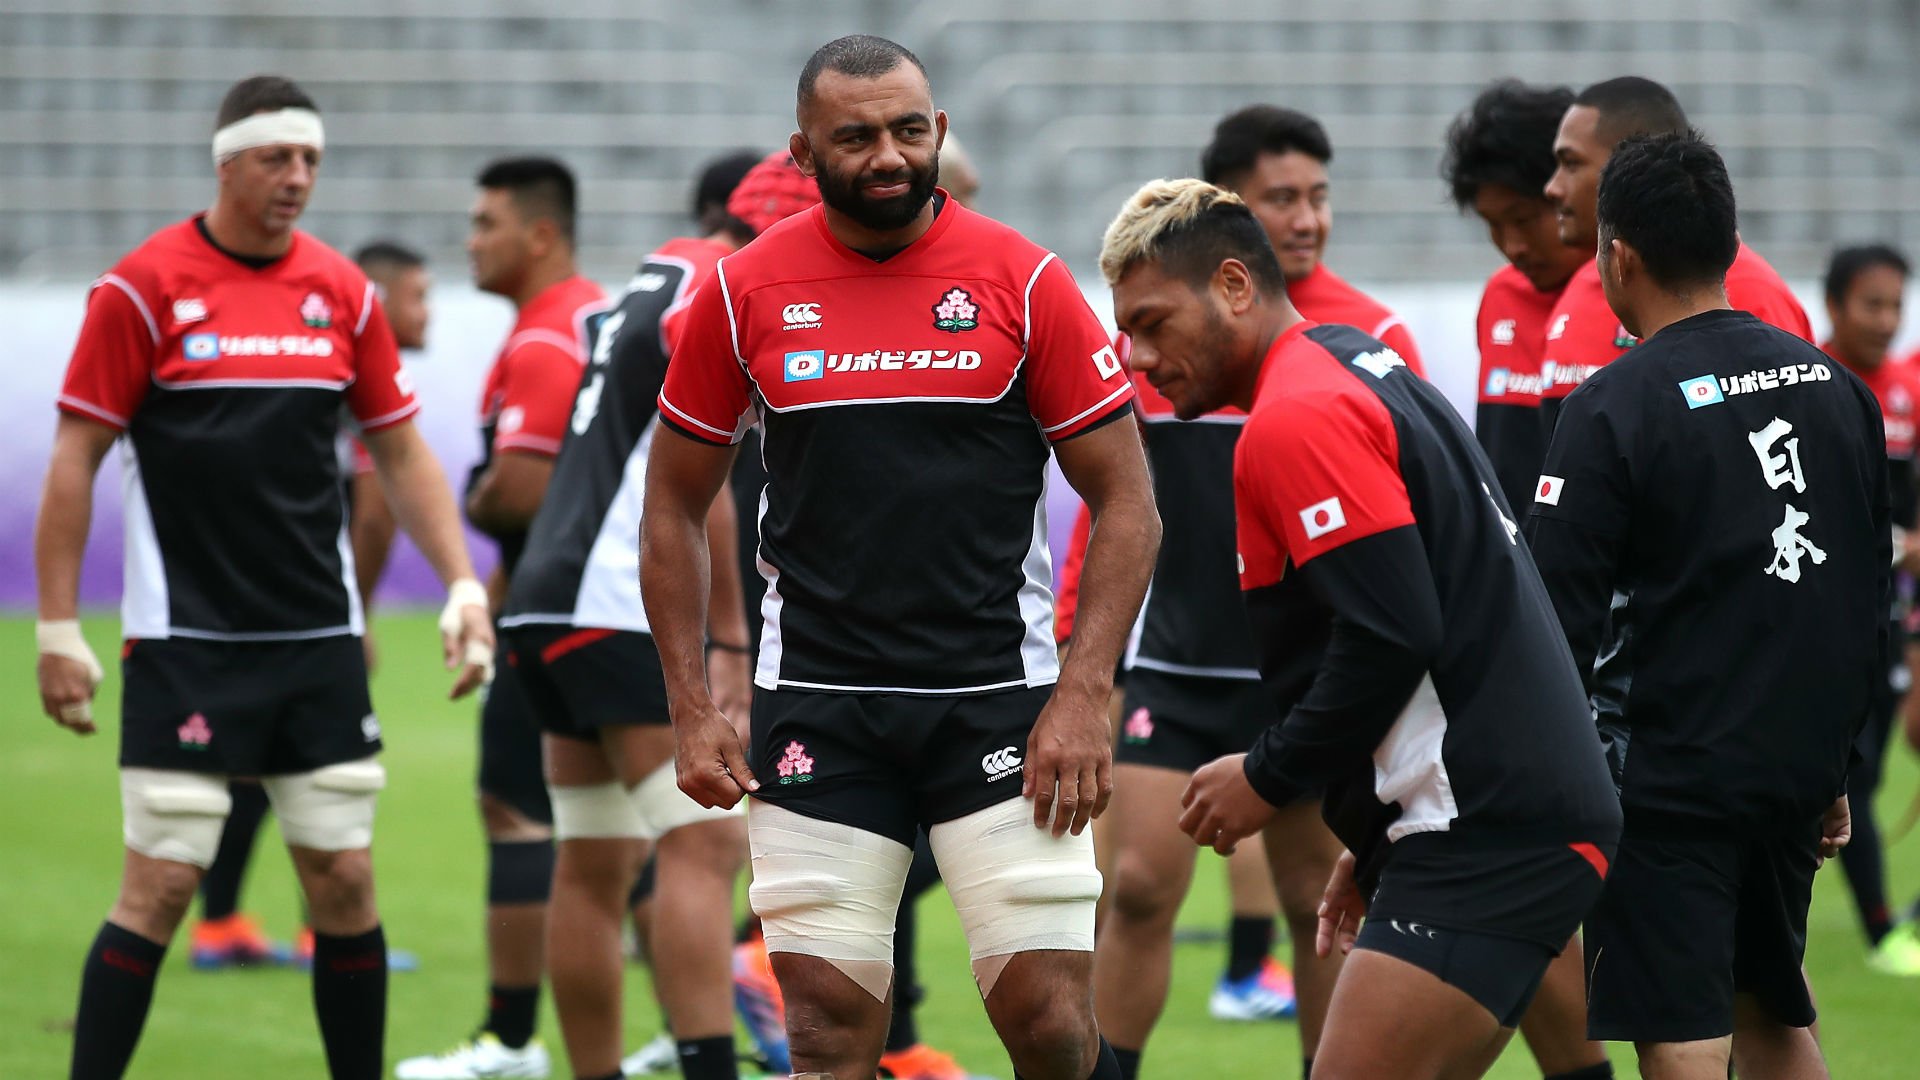 Rugby World Cup 2019: Japan v South Africa